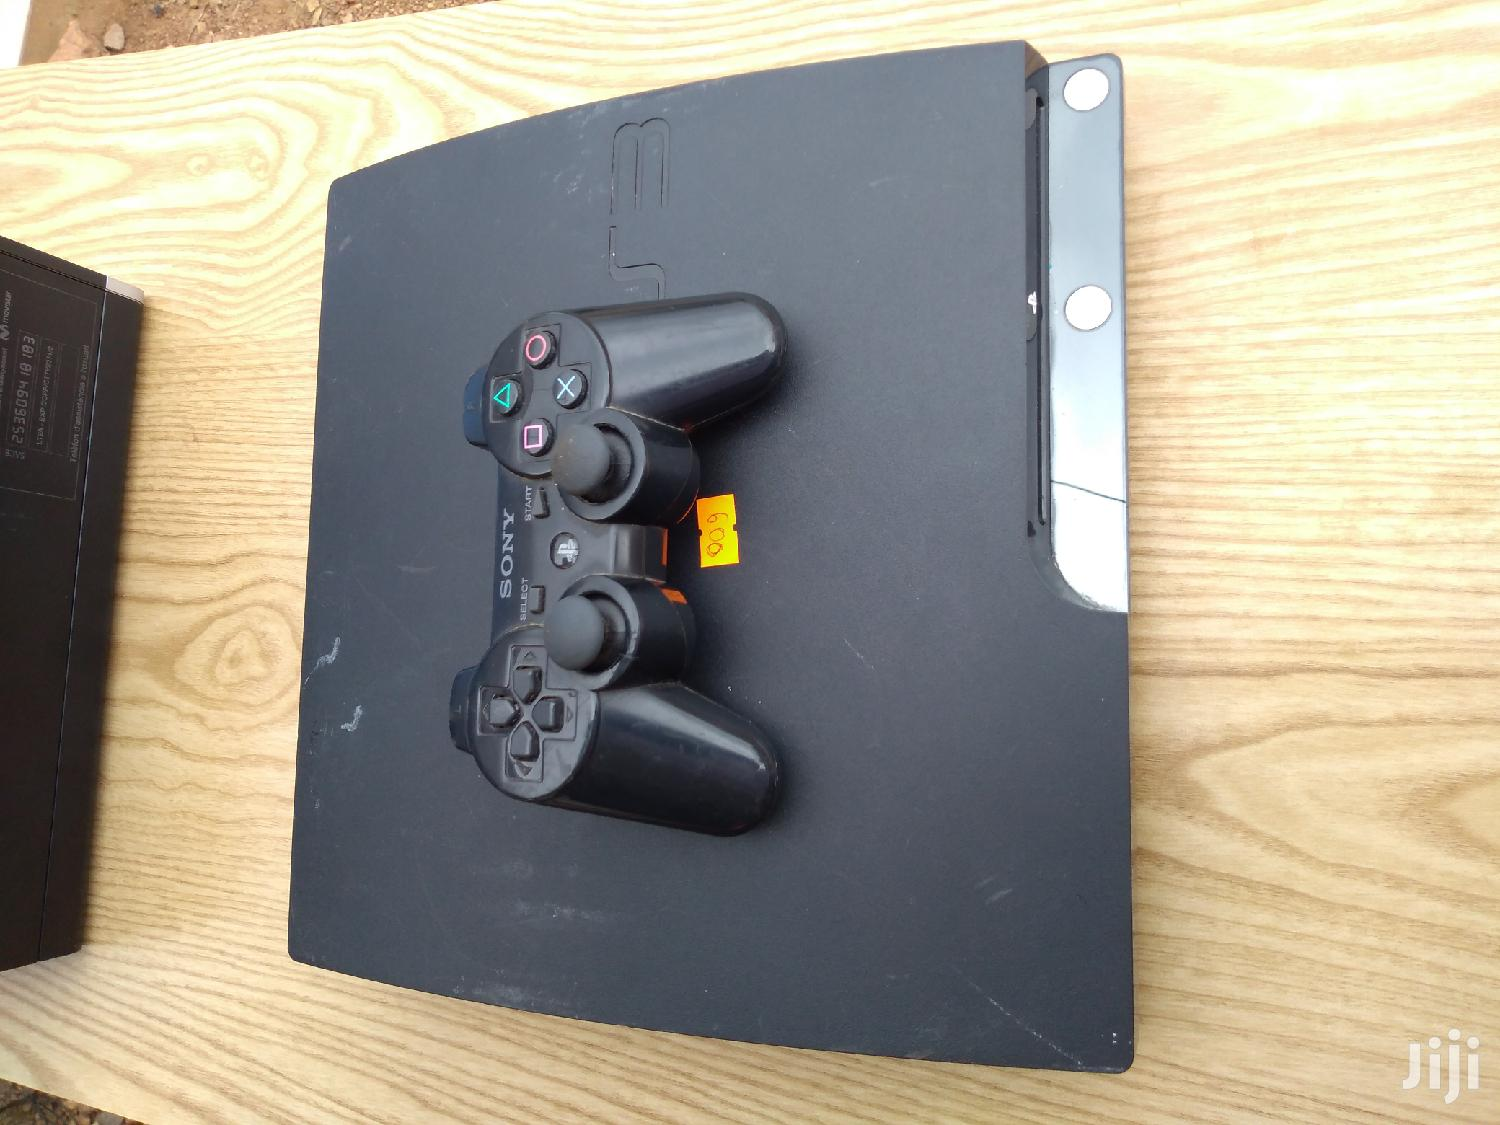 Ps3 Slim Console | Video Game Consoles for sale in Sunyani Municipal, Brong Ahafo, Ghana